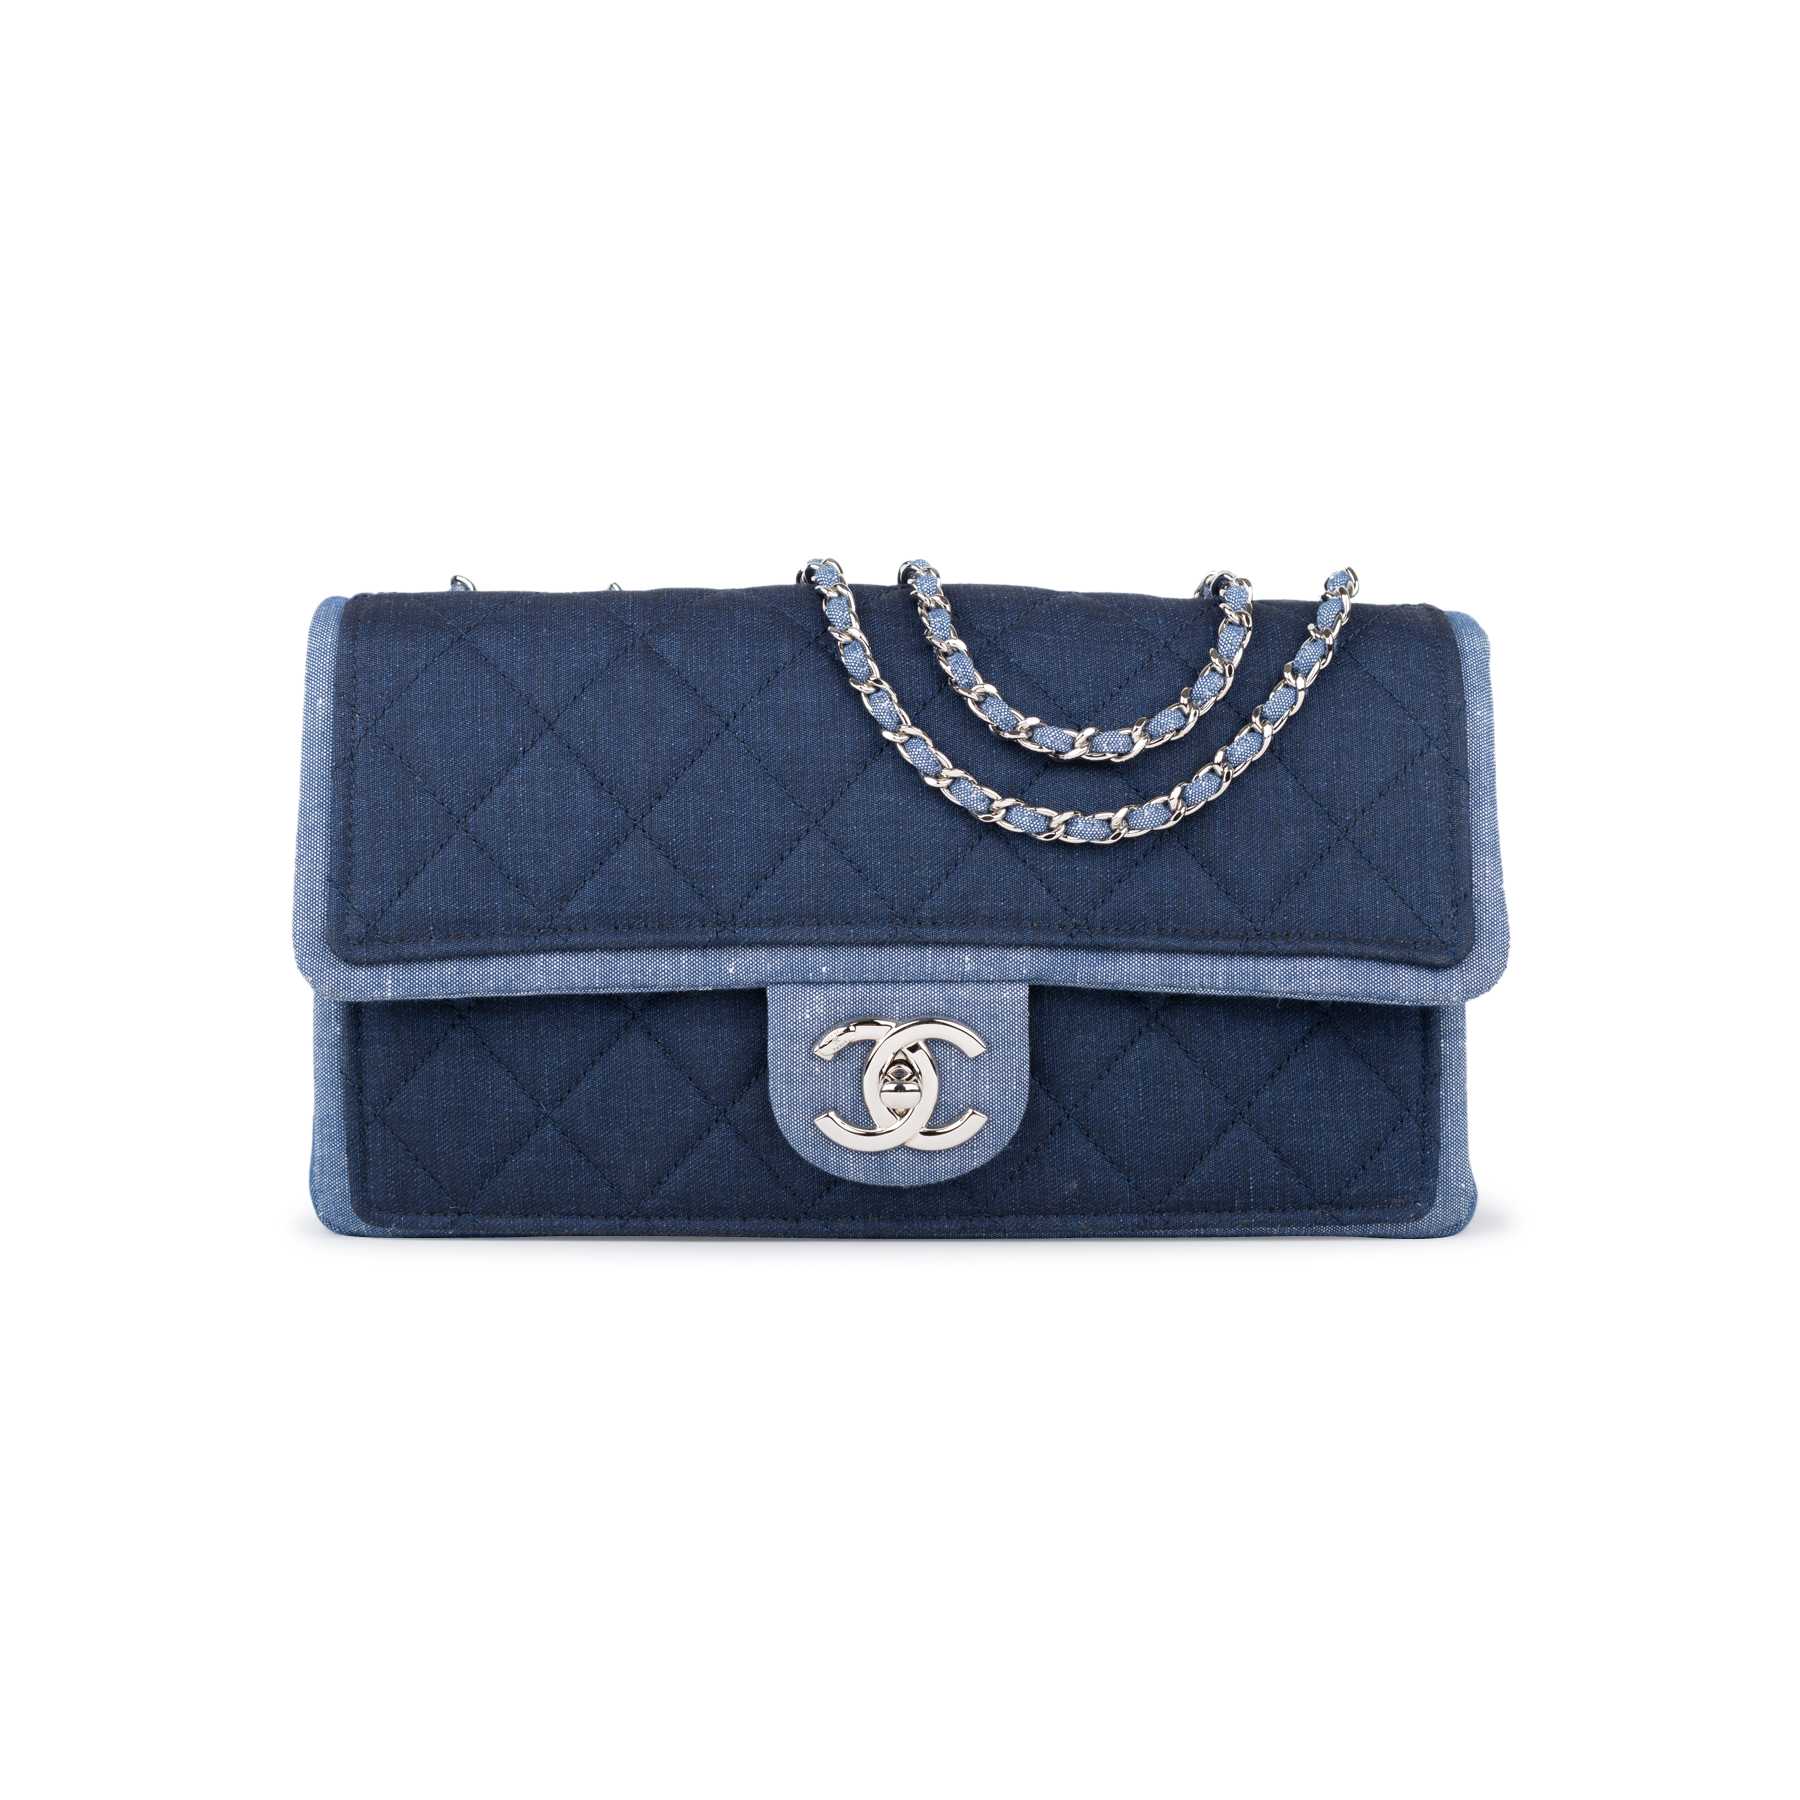 c9df3ff1e257 Authentic Second Hand Chanel Denim Flap Bag with Chanel Charm  (PSS-136-00047) | THE FIFTH COLLECTION